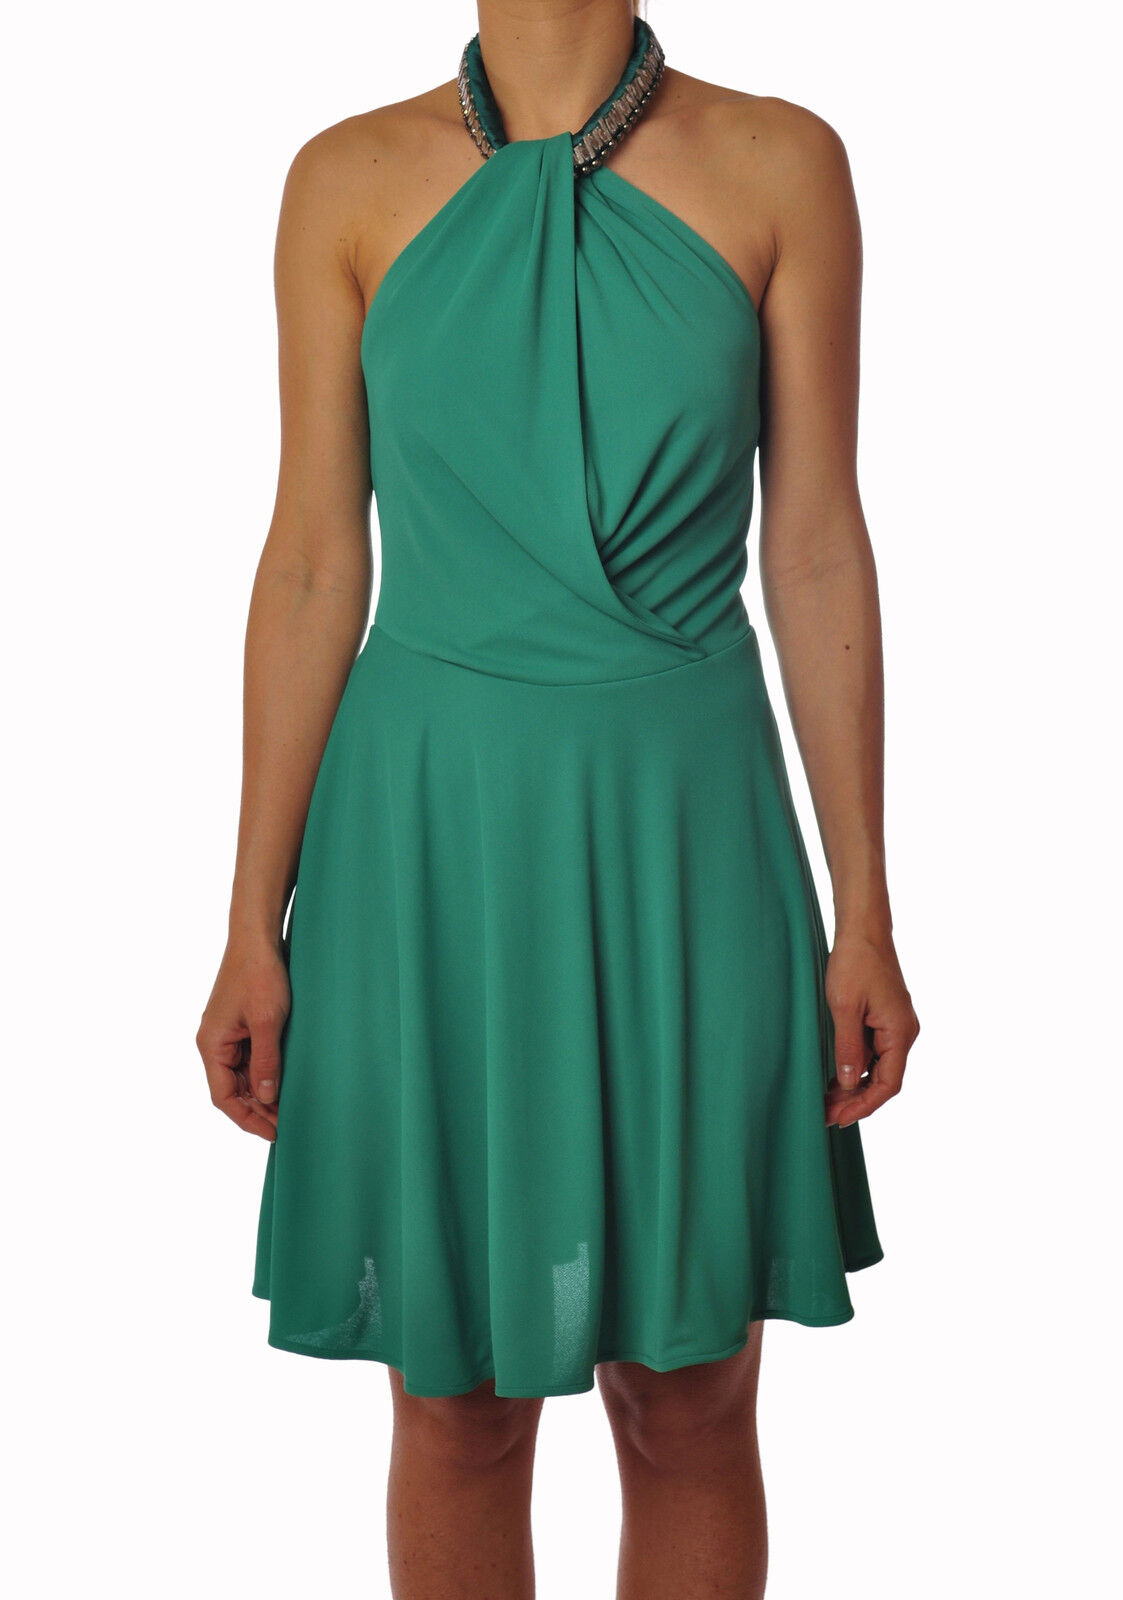 Patrizia Pepe - Dresses-Dress - Woman - Green - 3659106C194834